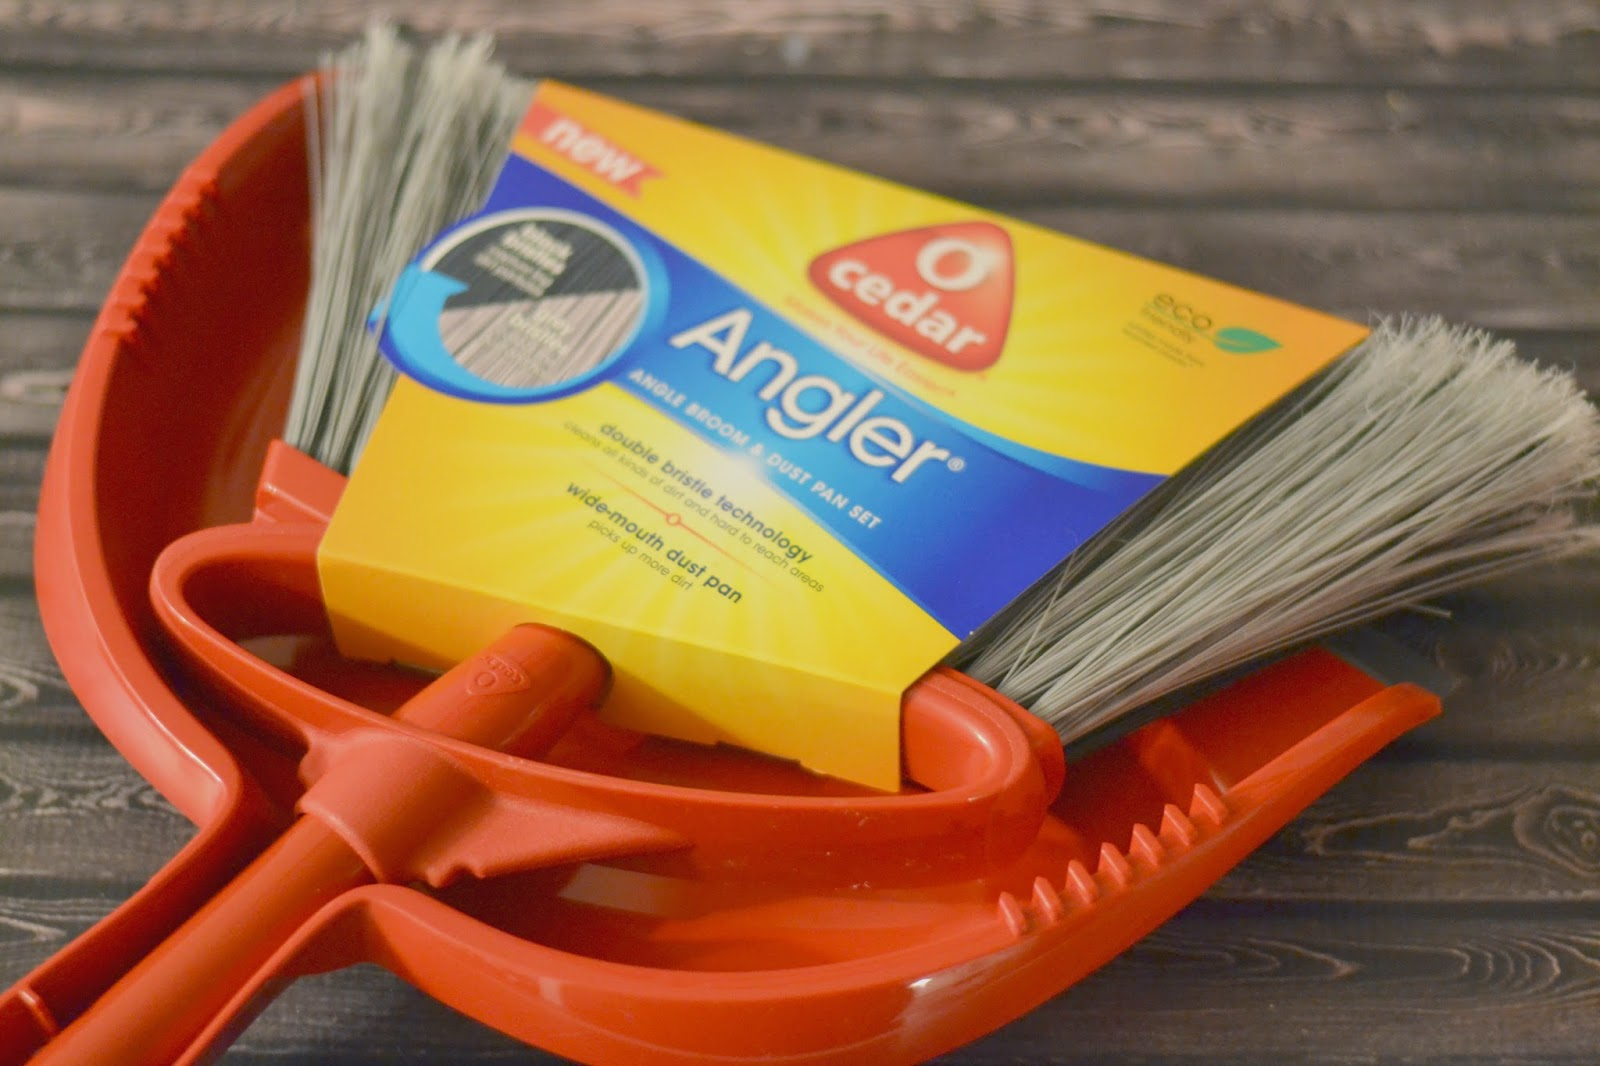 broom, dust pan or dustpan, O-Cedar Angler, Beautiful Mess, Dual Bristle Technology, Angle Broom, Indoor Broom, Sweeping.